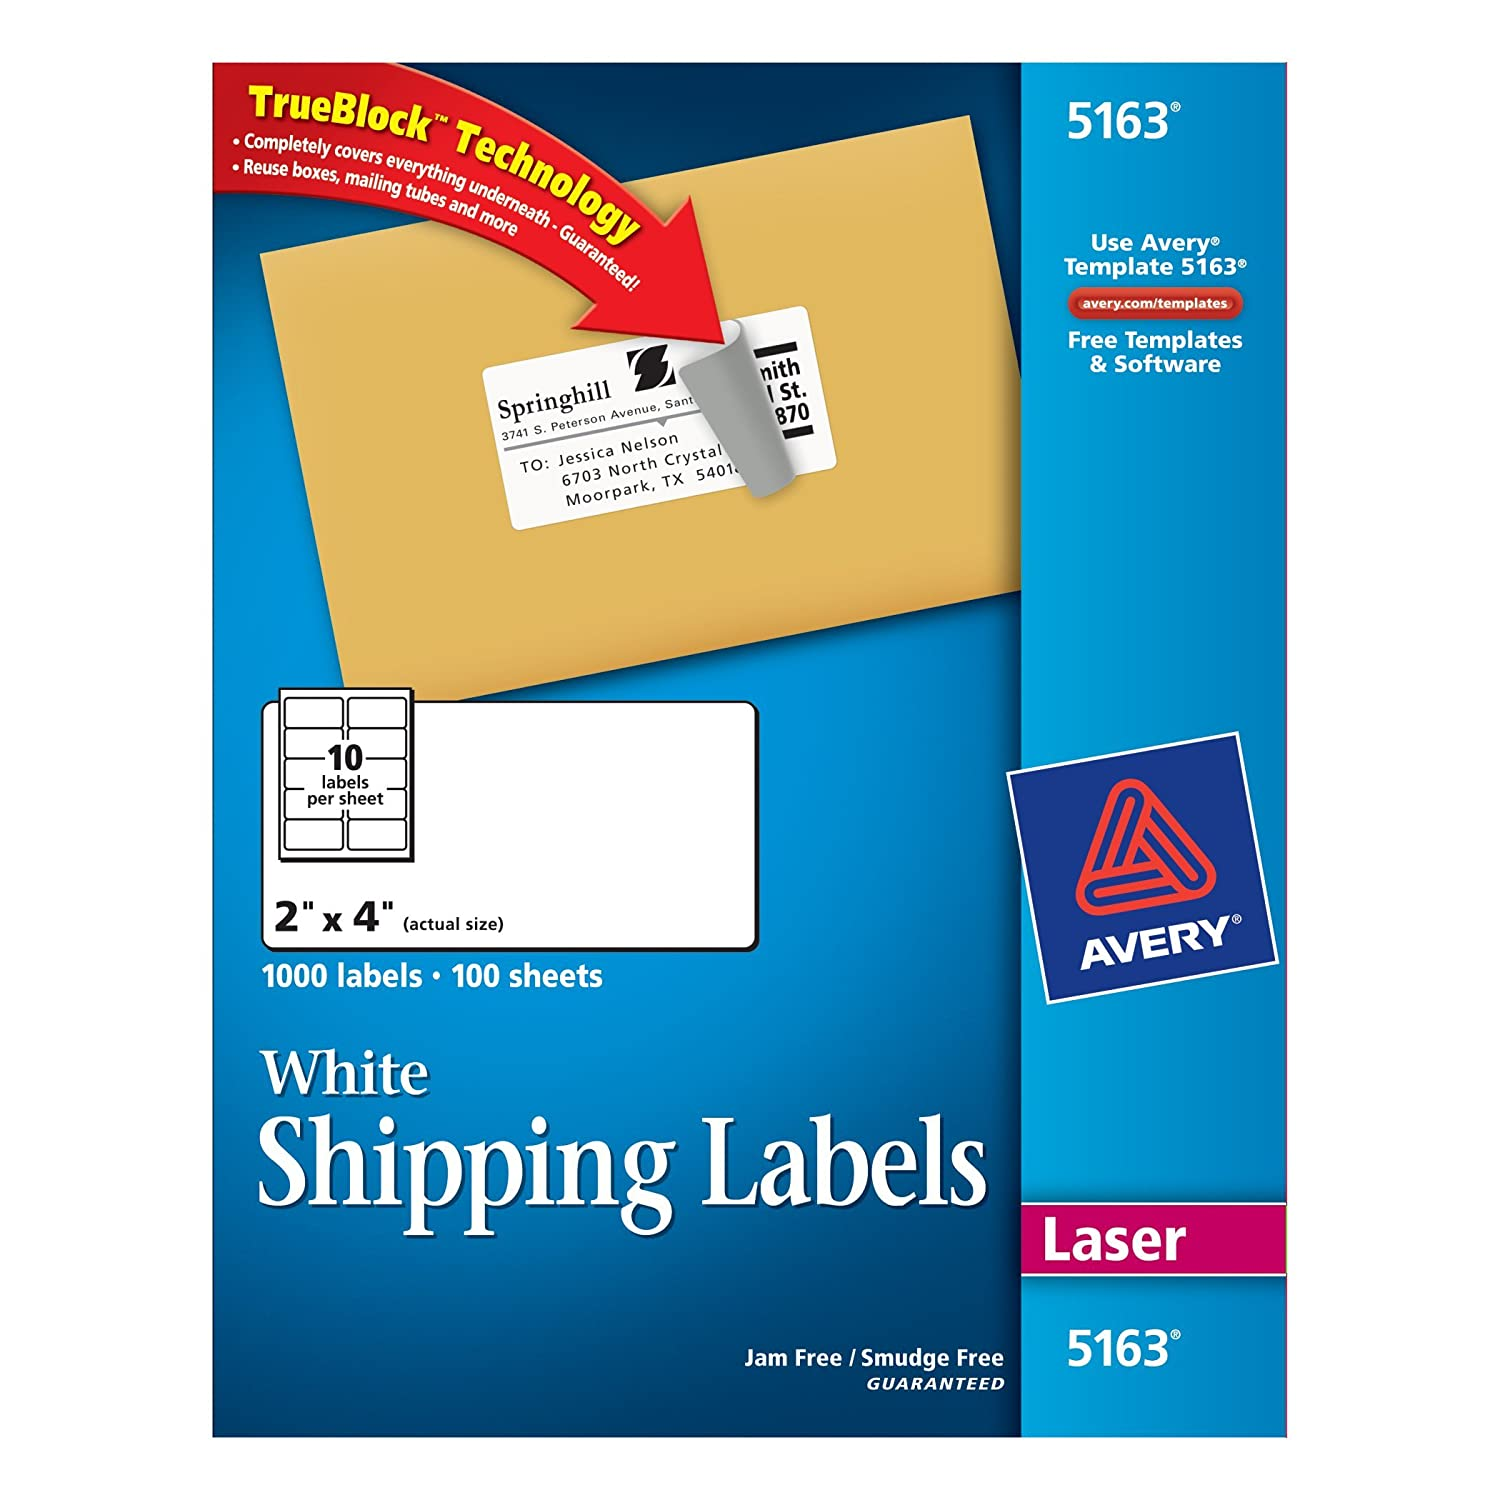 amazon com avery mailing labels with trueblock technology for laser